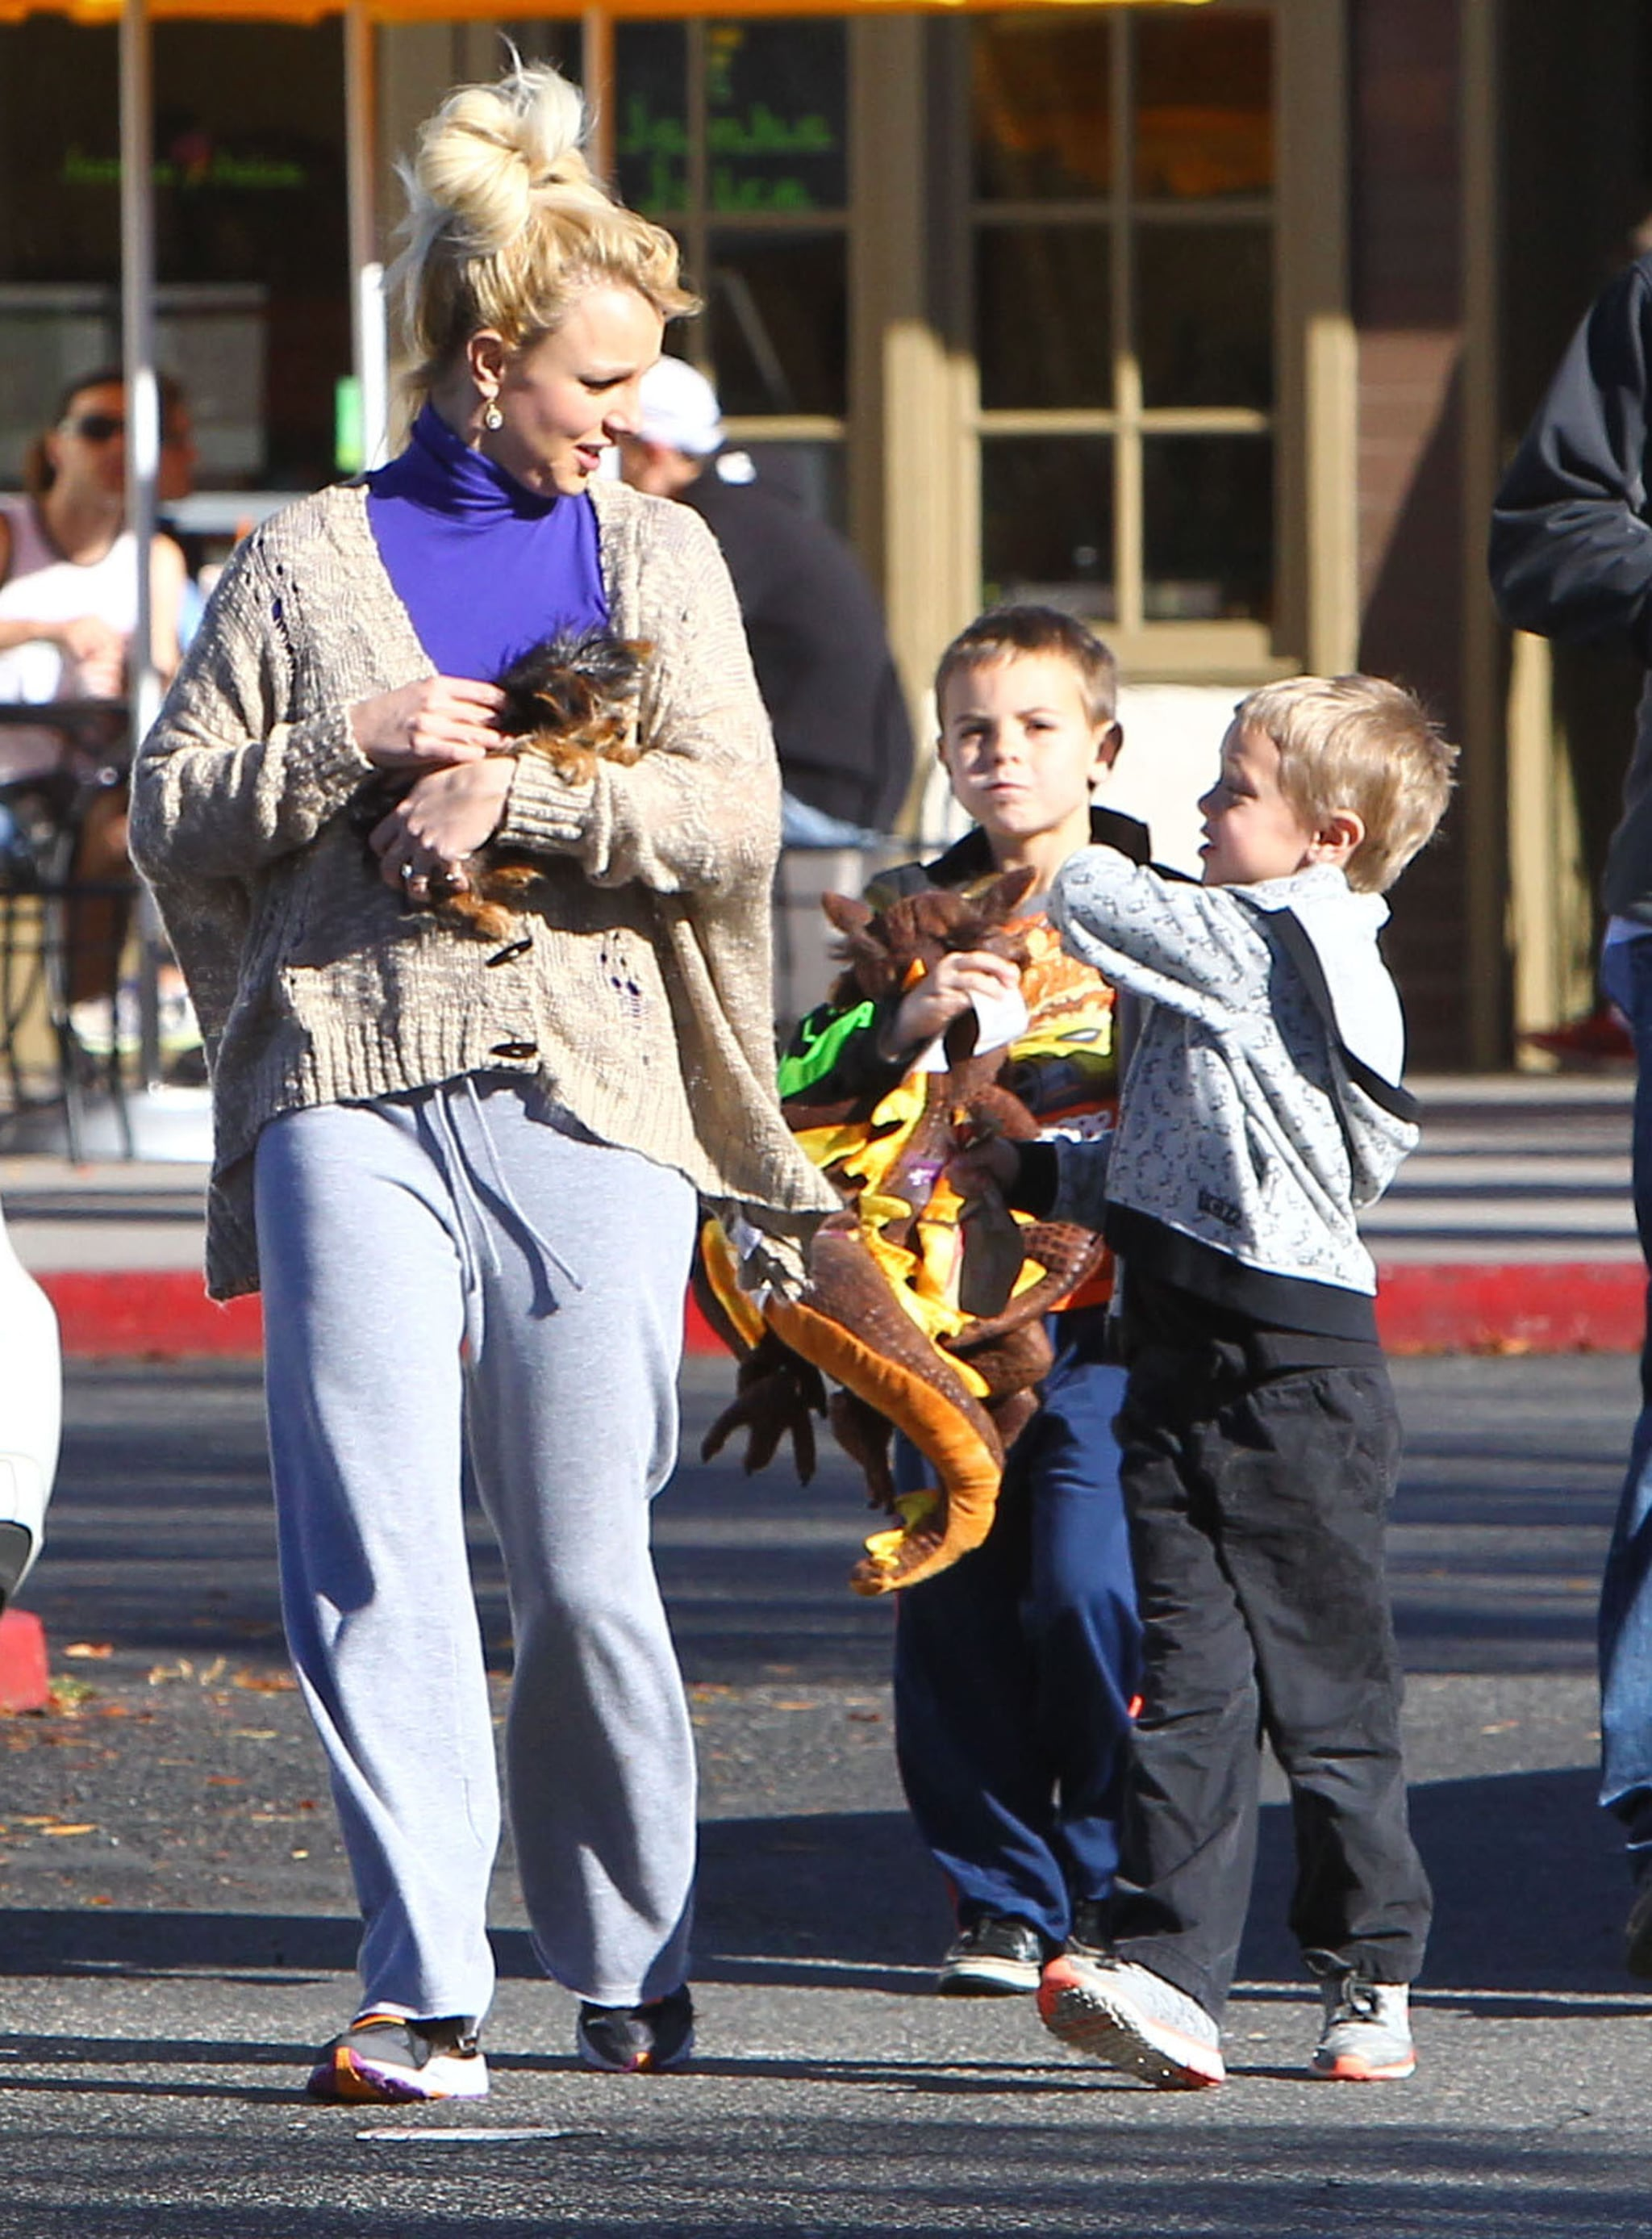 Brit and Her Boys Prep For Jason's Birthday With a Starbucks Stop